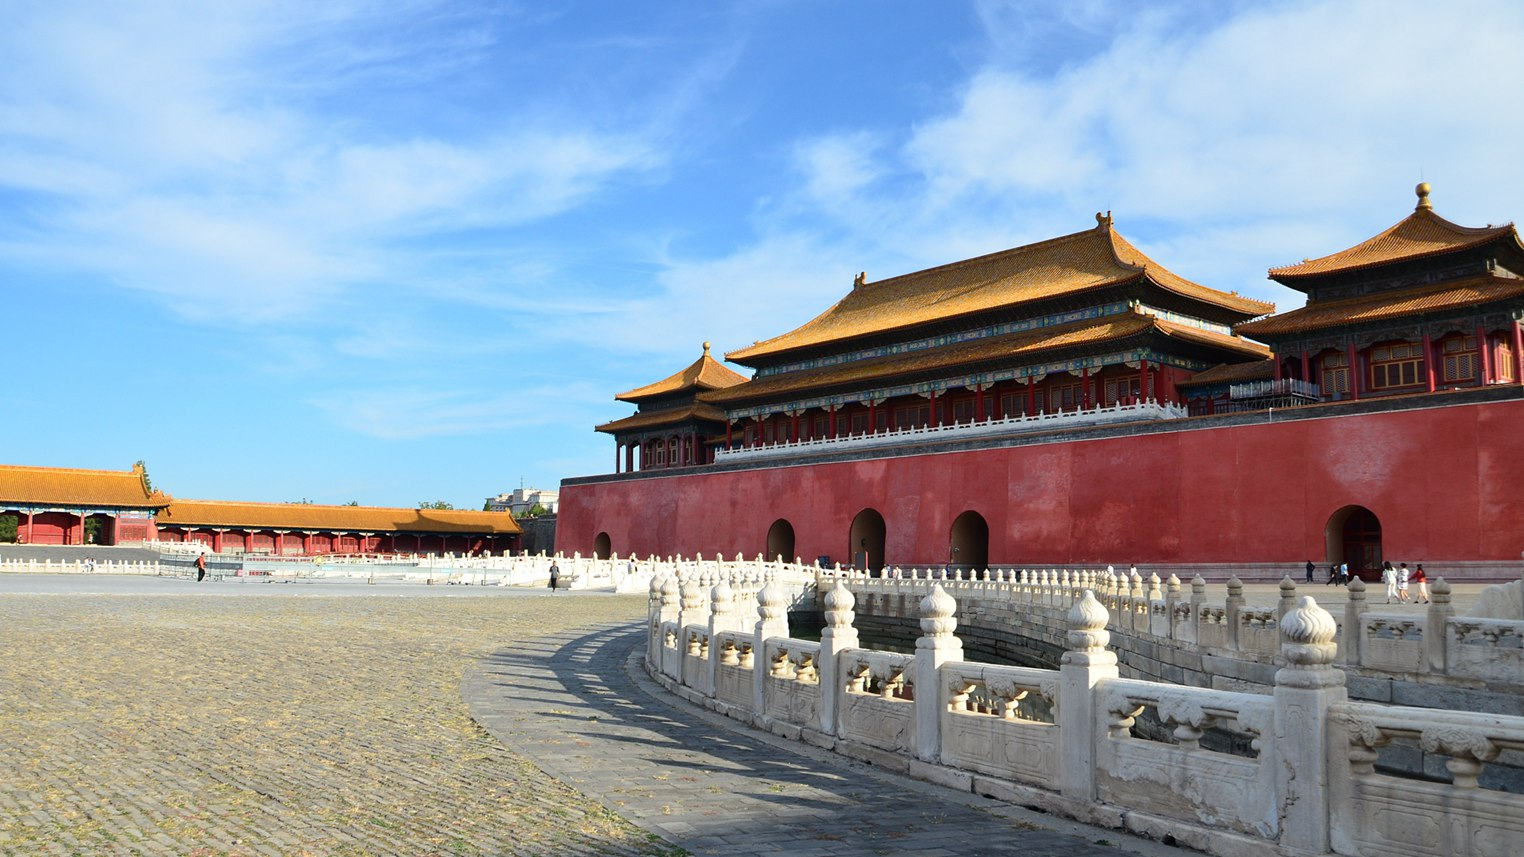 Beijing proposes opening unused historic buildings to public